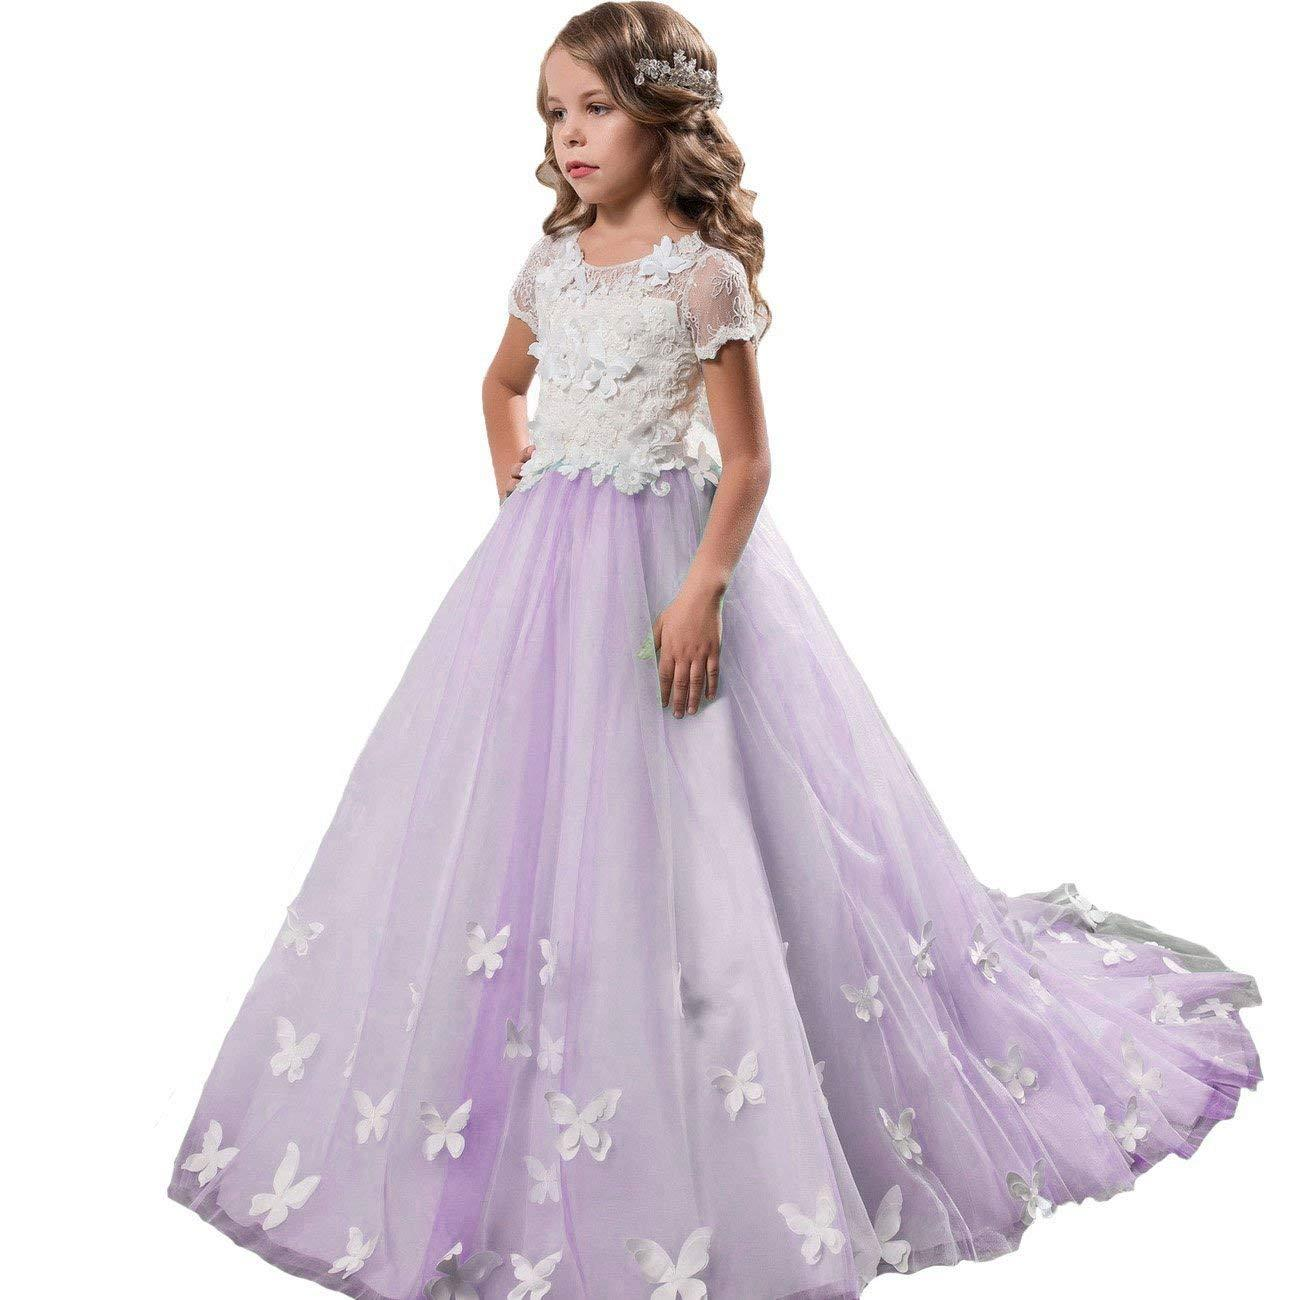 Country White Ivory Lace Flower Girl Dresses First Communion Party